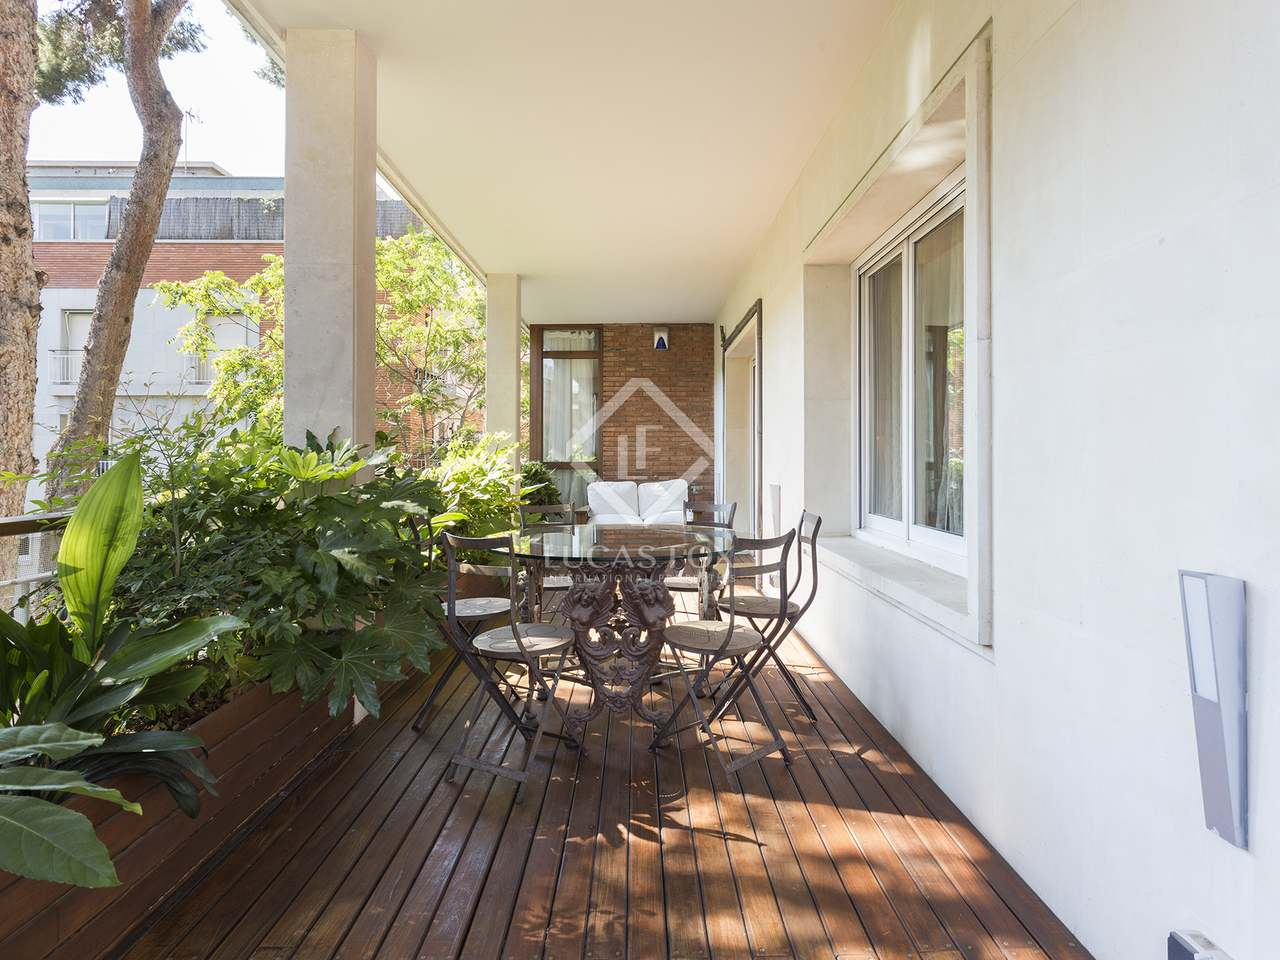 5 bedroom apartment with a terrace in the exclusive area of turó park